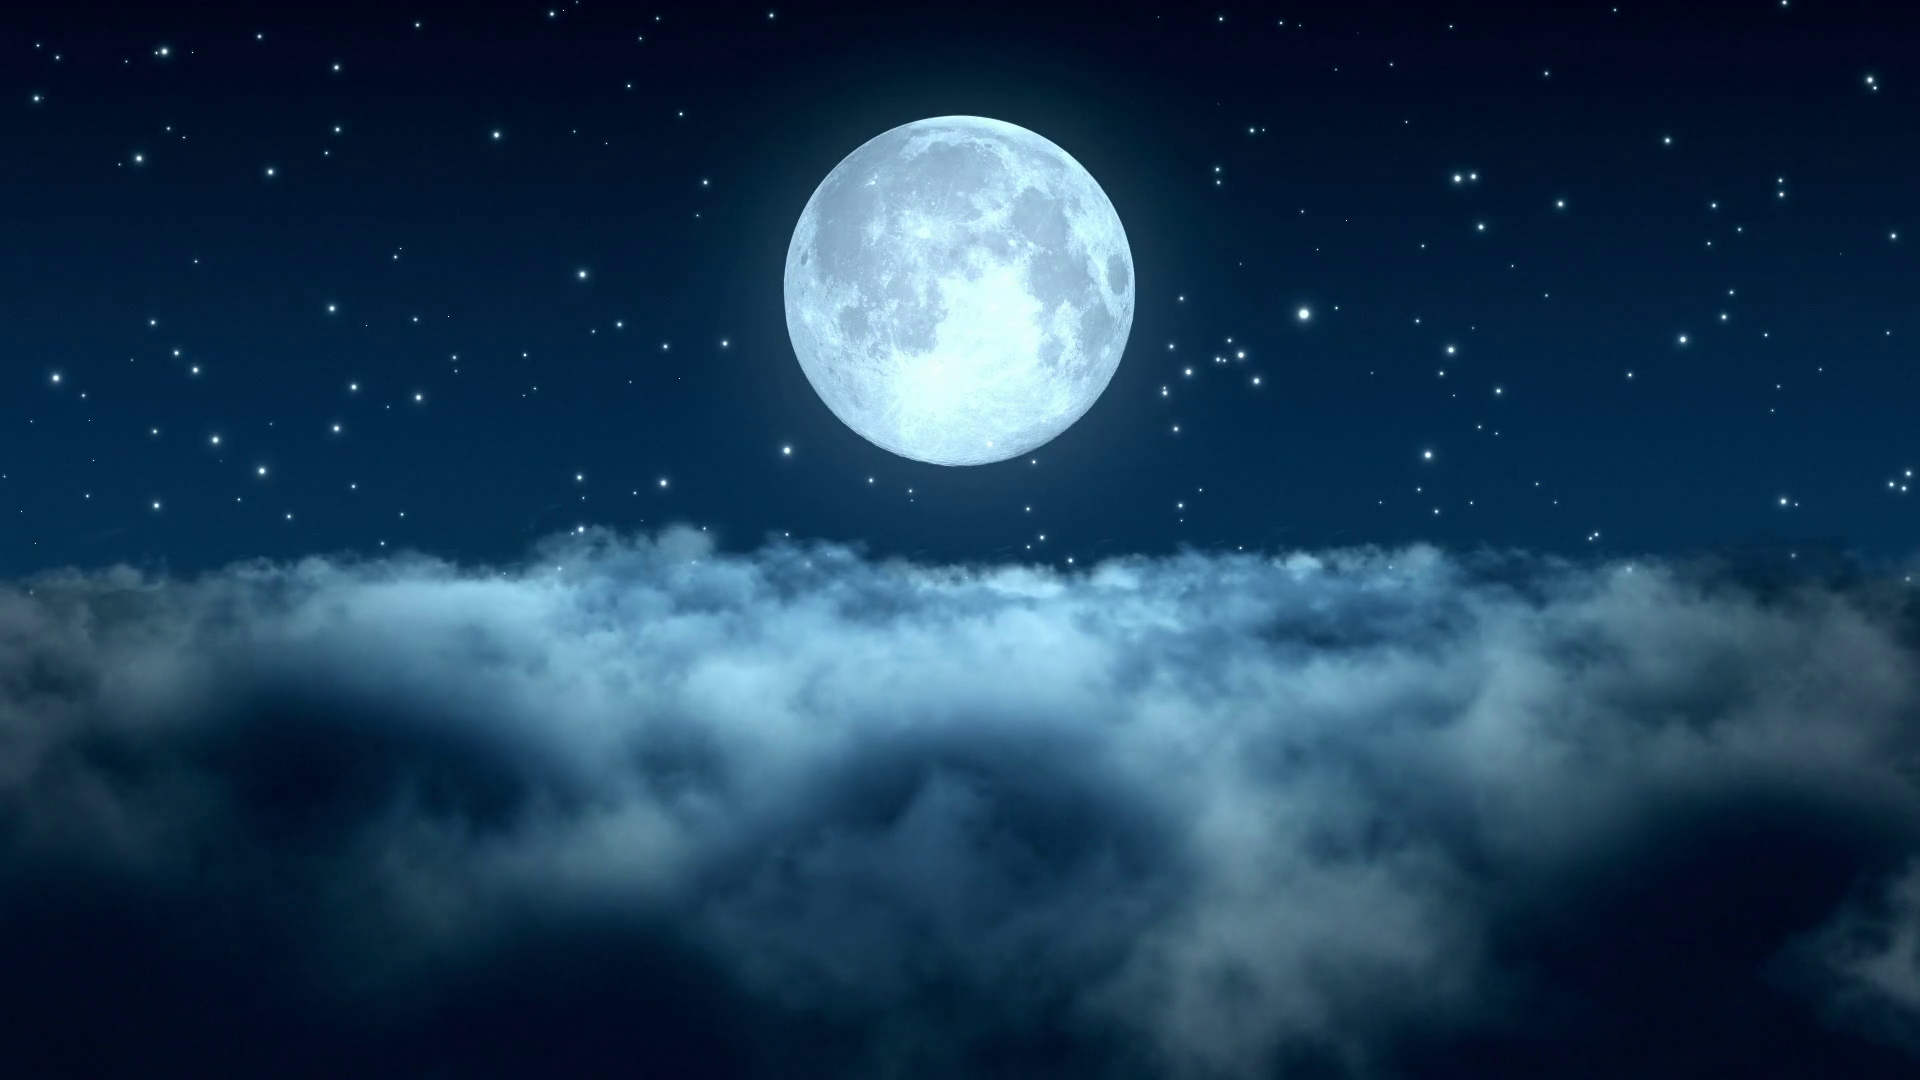 Moon And Star PNG HD Transparent Moon And Star HD.PNG Images.